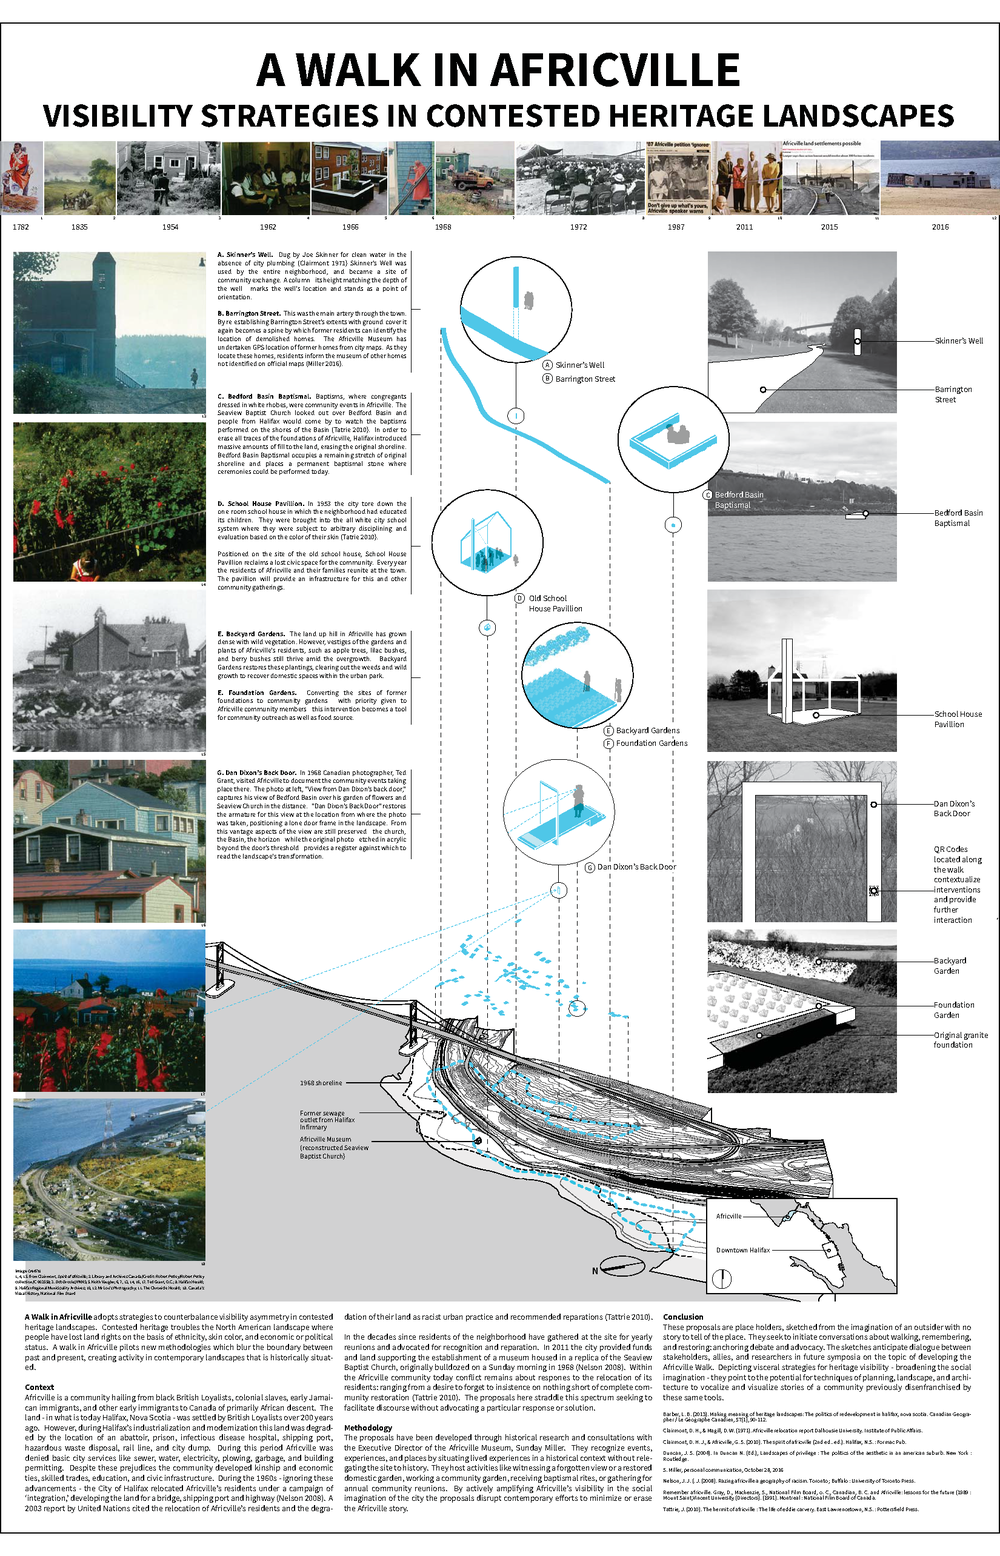 ACSA 105_Project Poster_Africville_Reduced_11x17.png